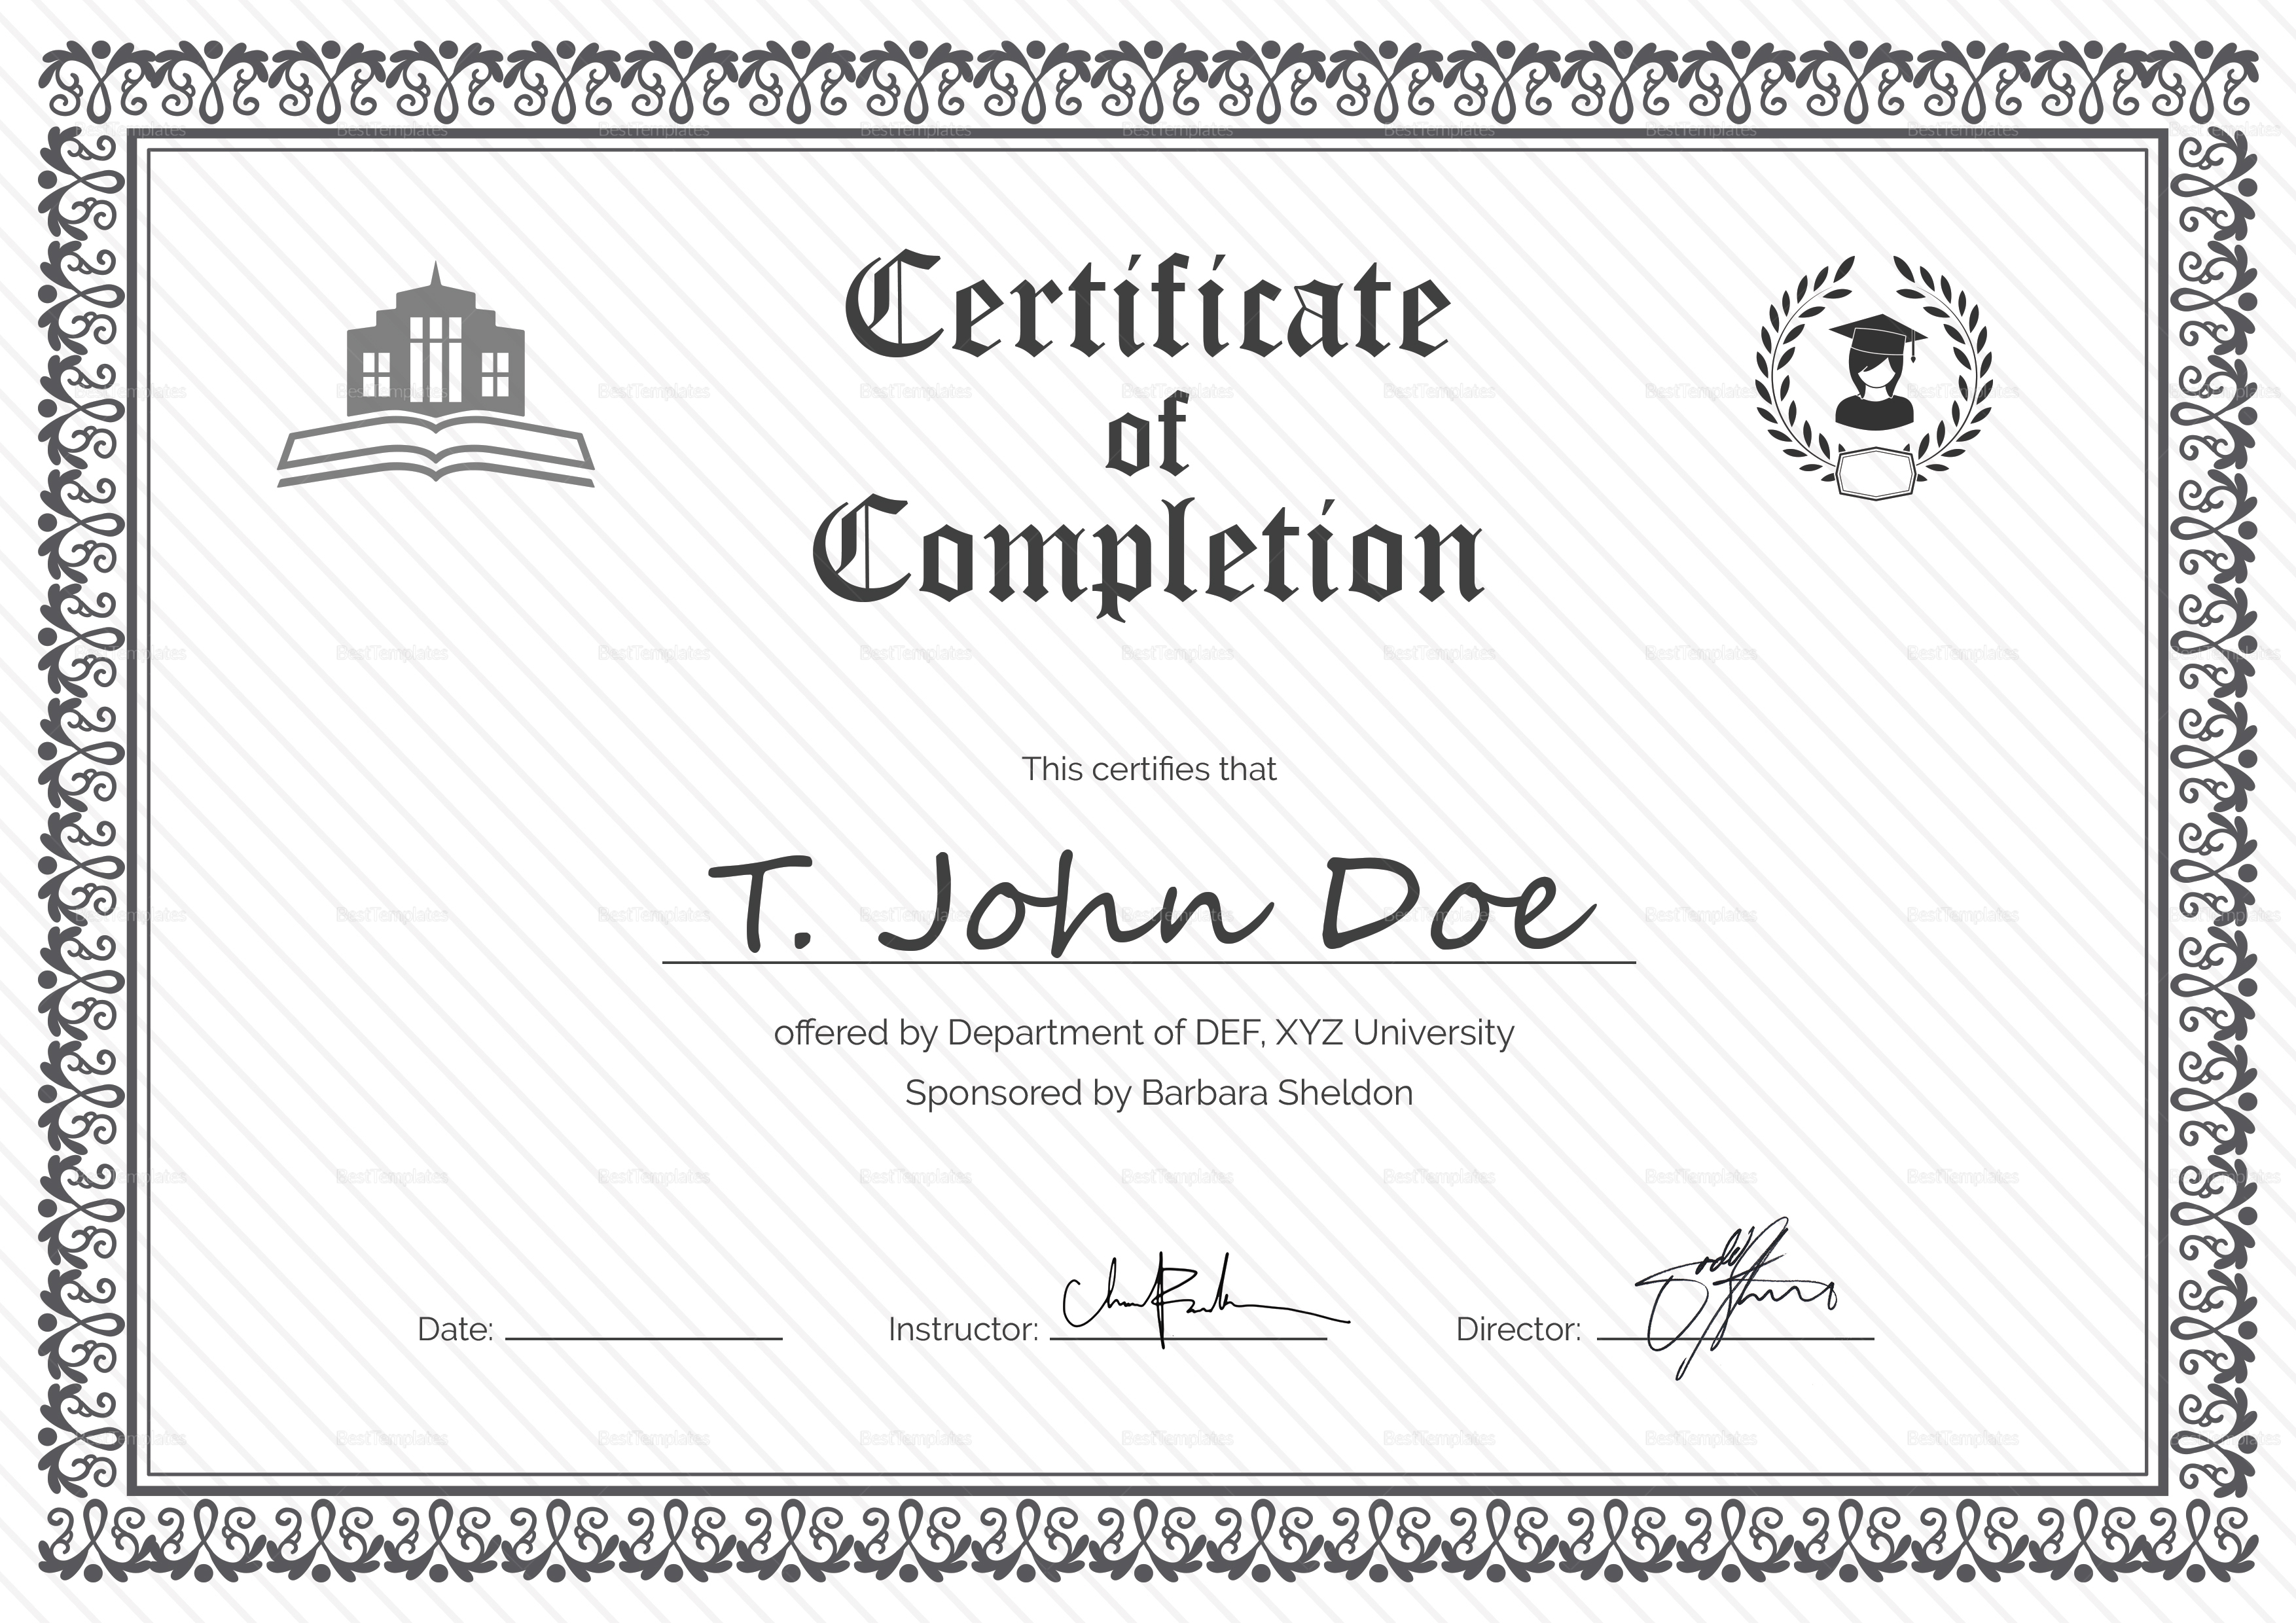 EPS Certificate of Completion